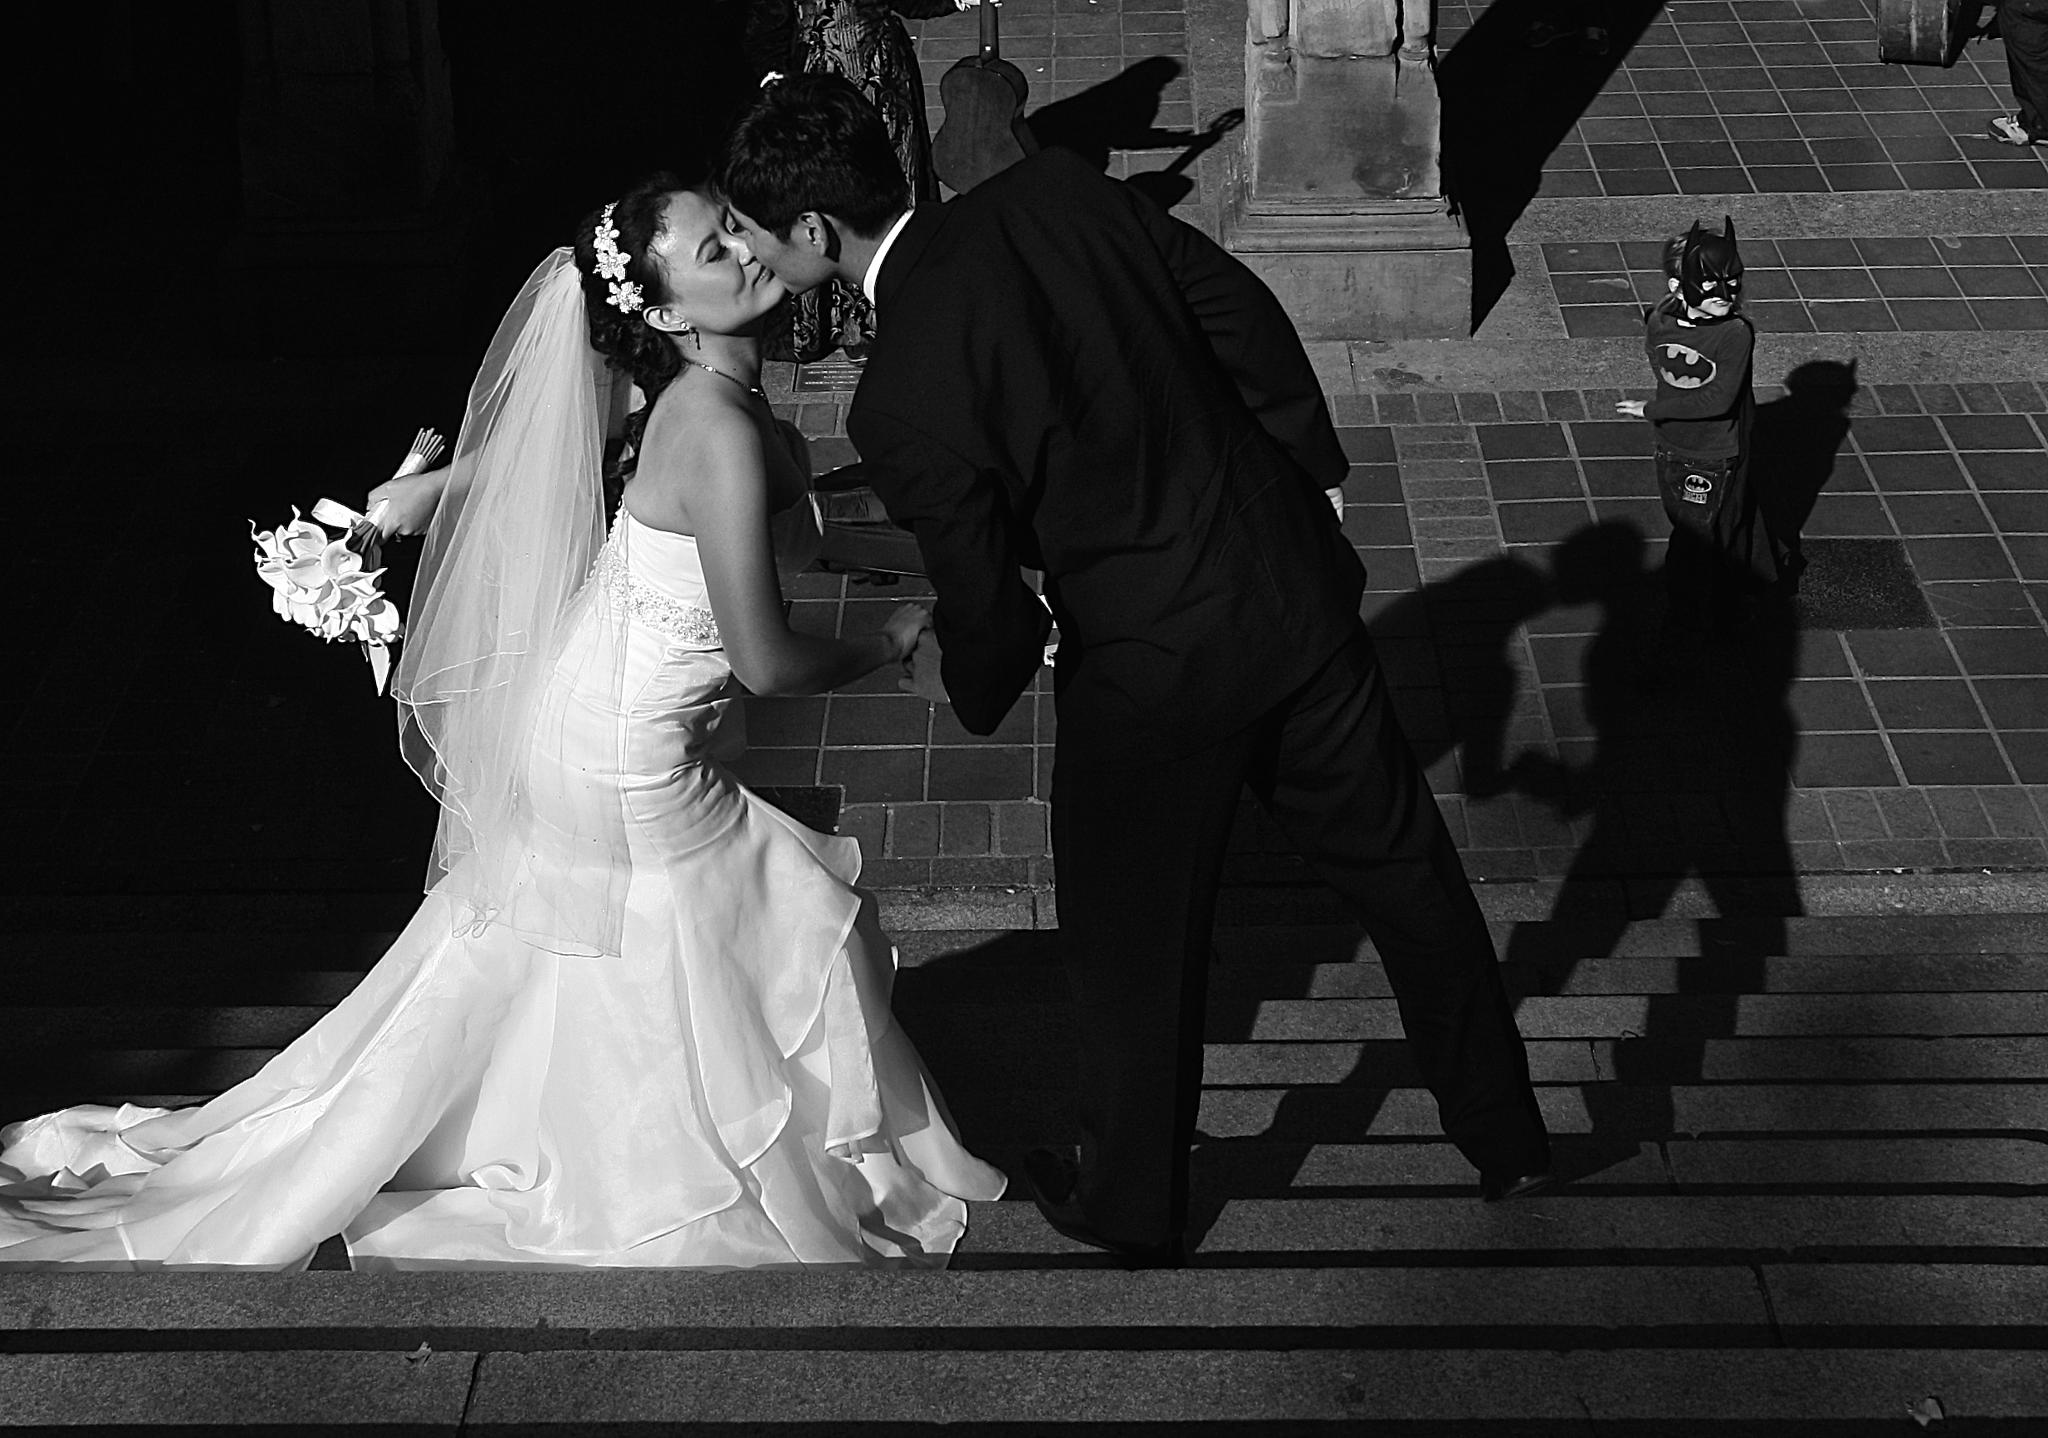 the wedding by michal.hess